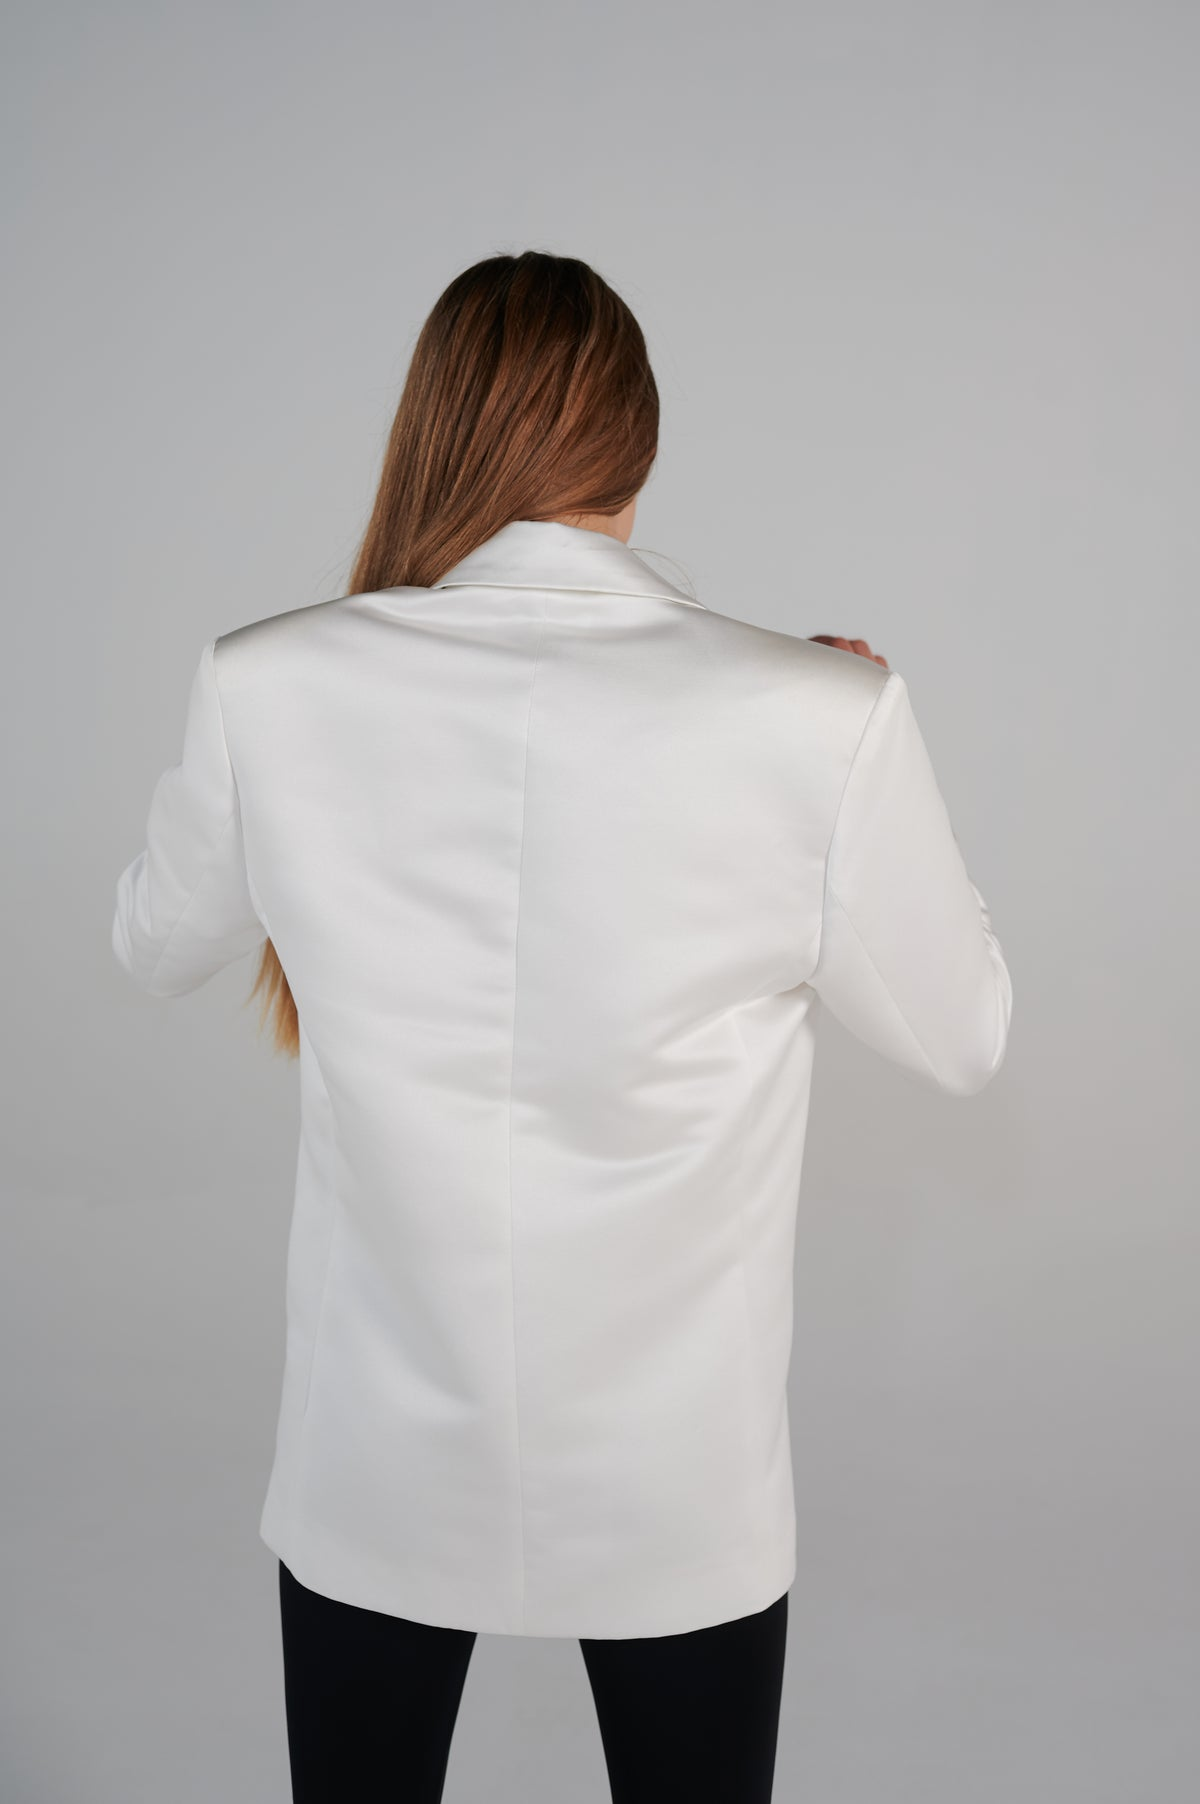 white-tailoring-jacket-back-long-sleeves-v-neck-oversize-shoulders.jpg